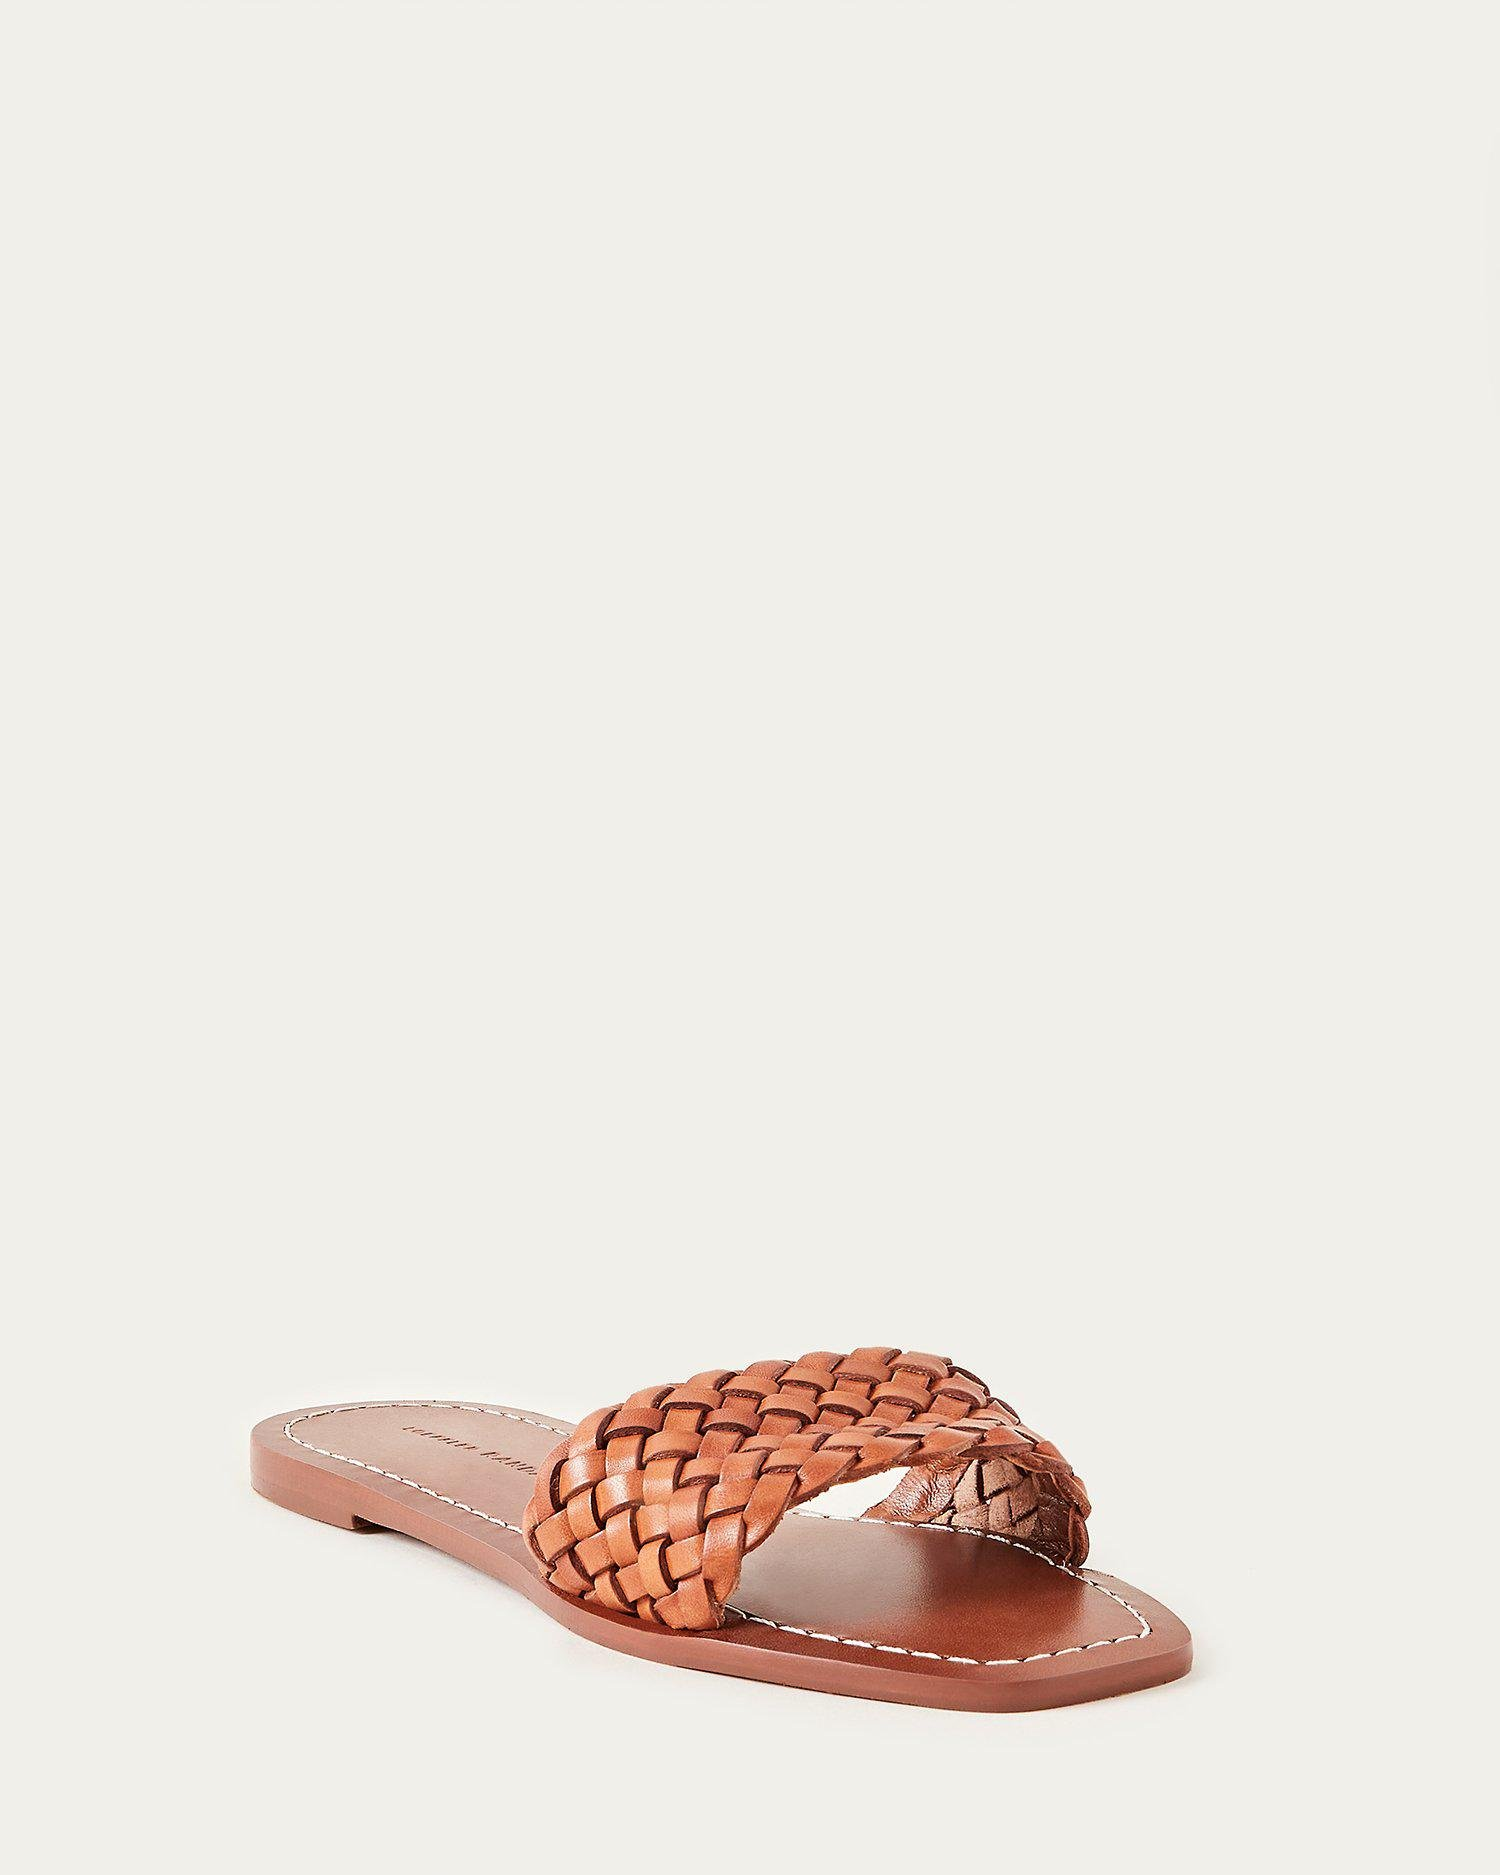 Joey Timber Brown Woven Leather Slide